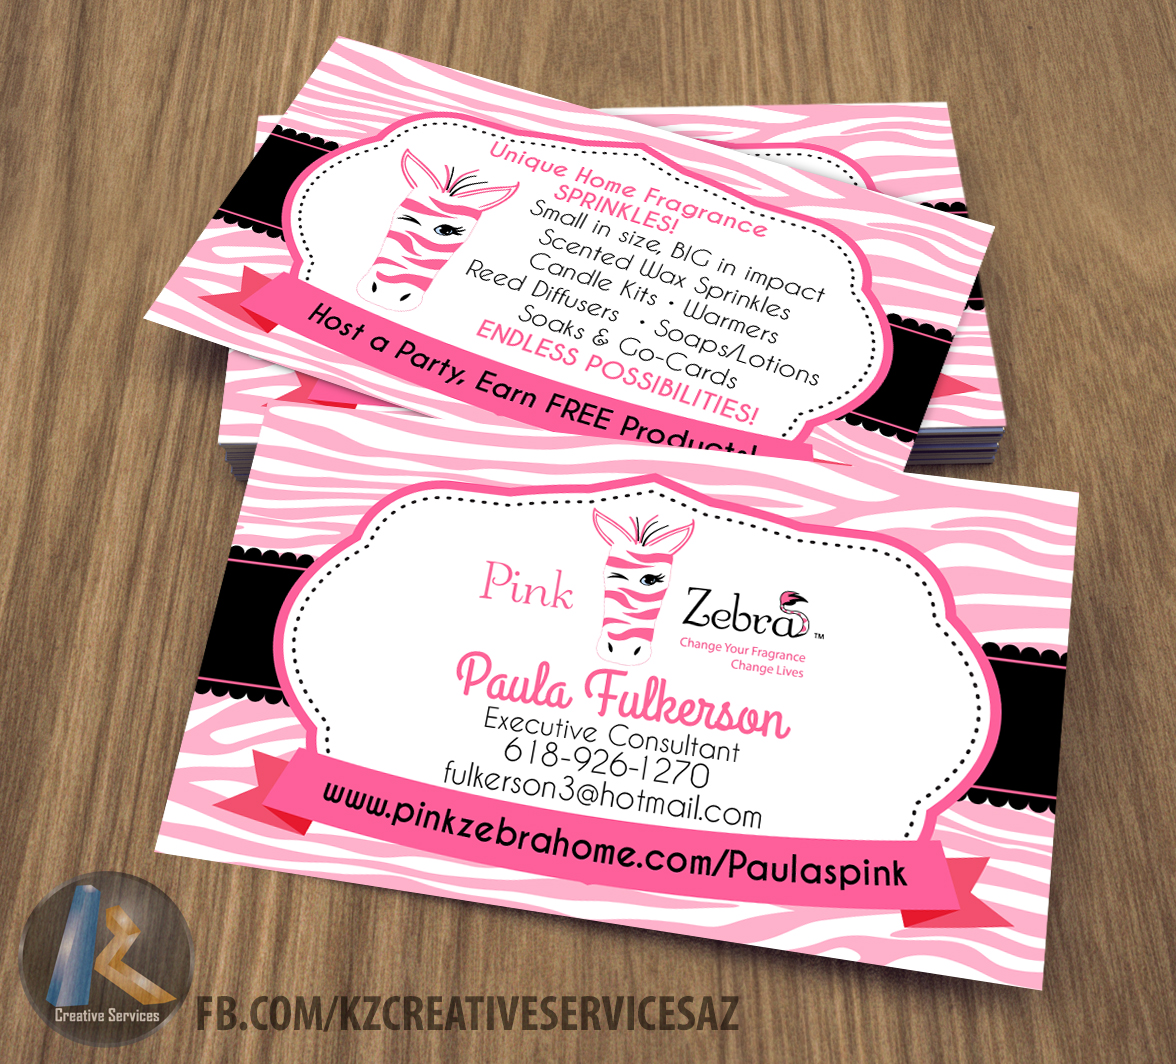 PINK ZEBRA business Cards style 4 from KZ Creative Services